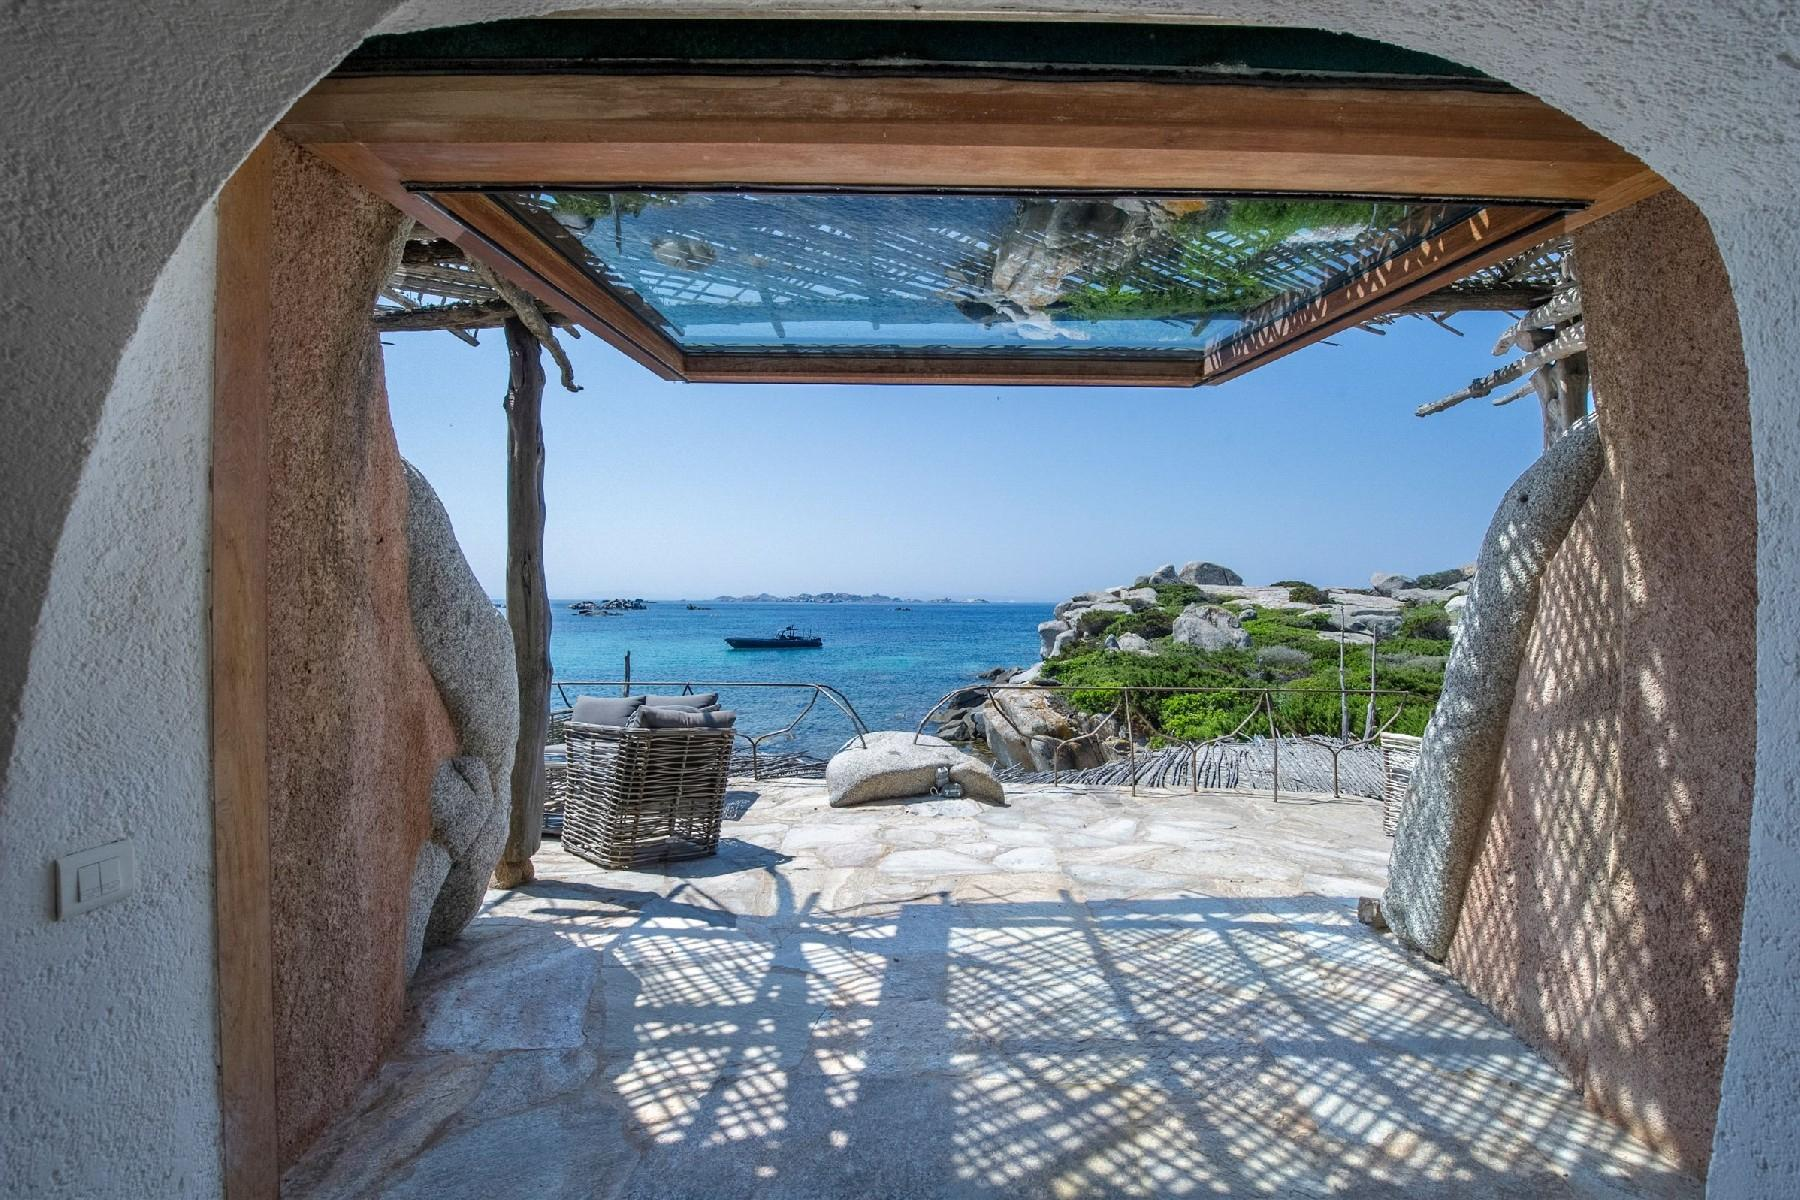 Cavallo Island, Corsica - Pieds-dans-l'eau villa designed by the architect Savin Couelle - 3